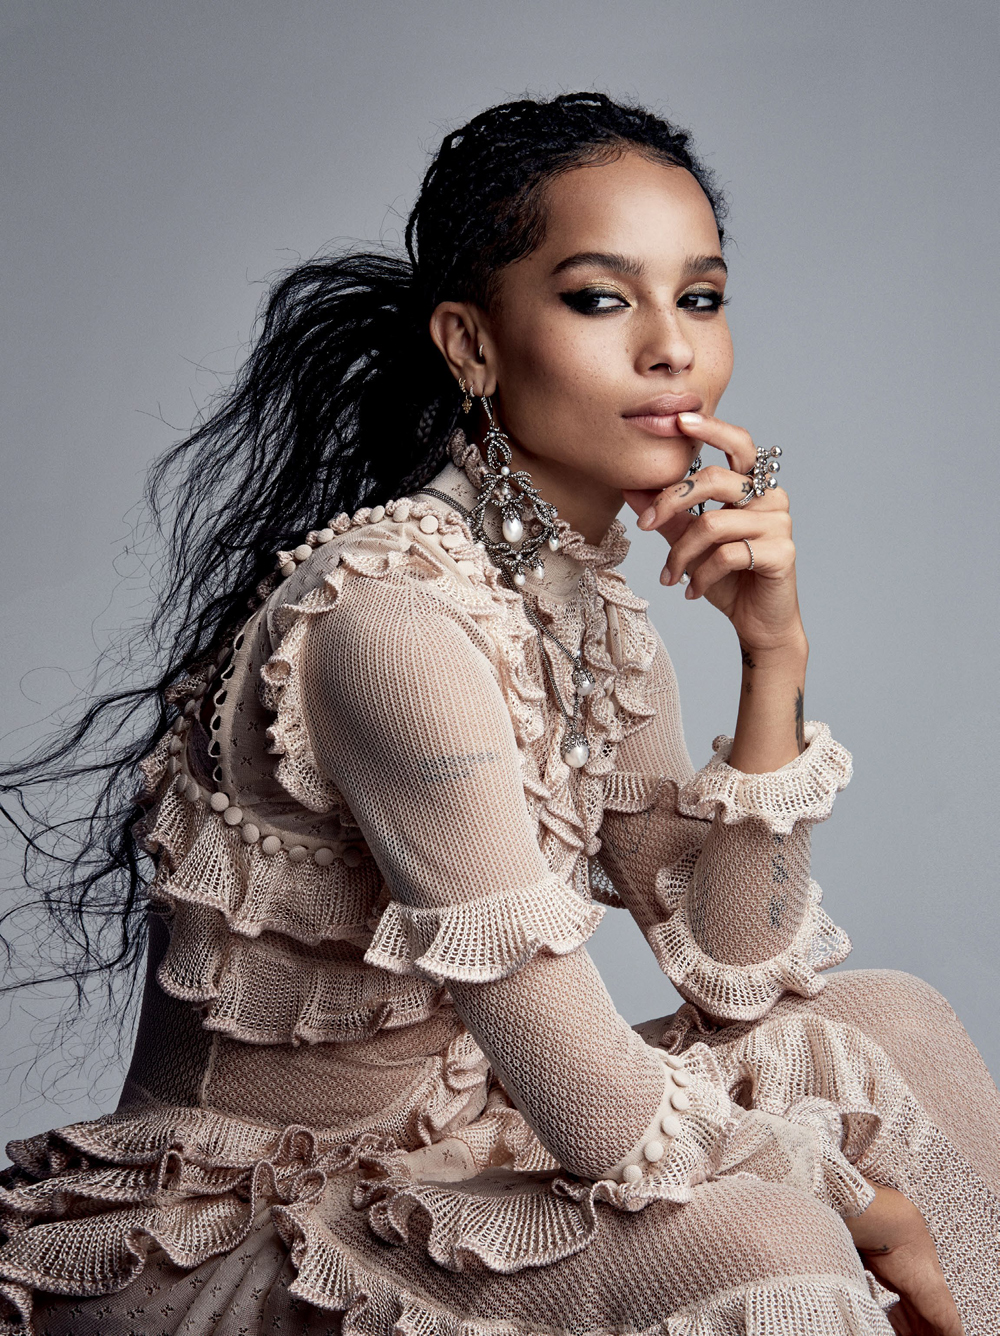 Zoe Kravitz by Patrick_Demarchelier